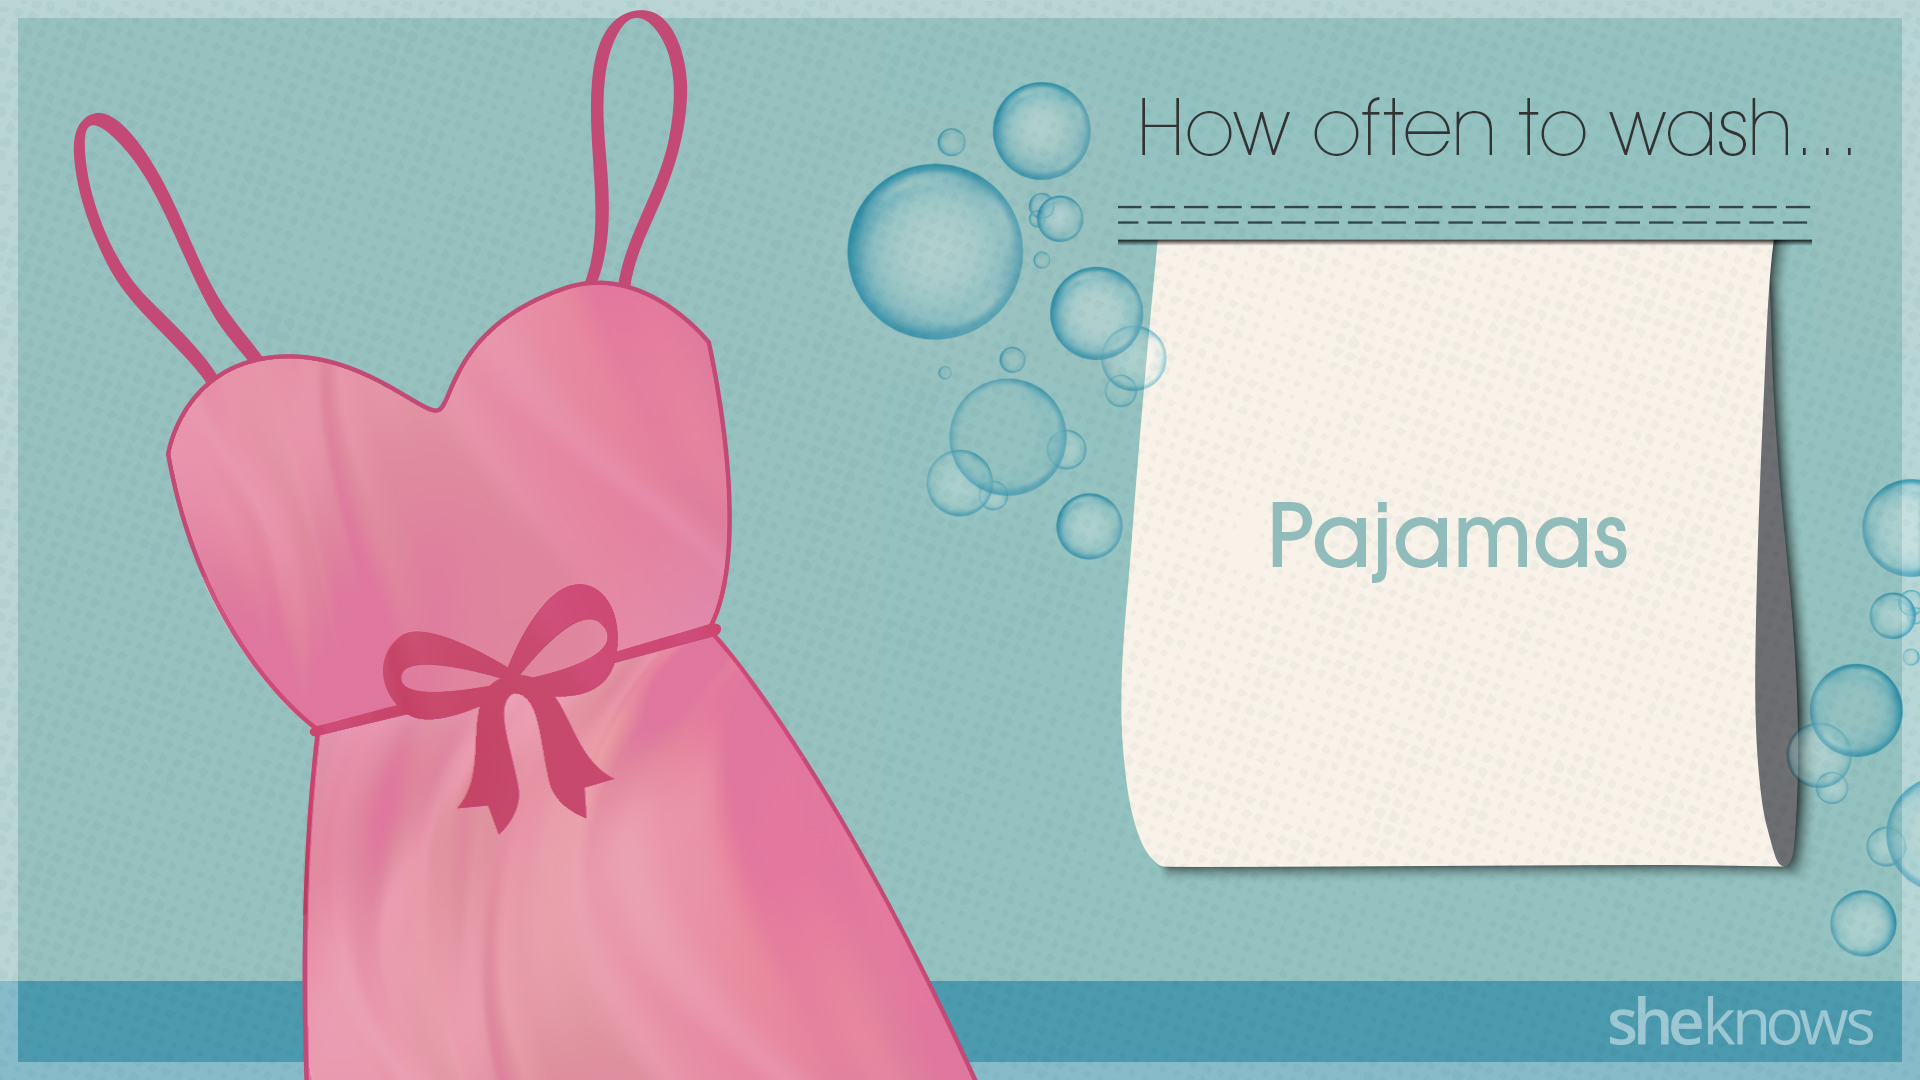 You're probably washing your clothes too much: Pajamas